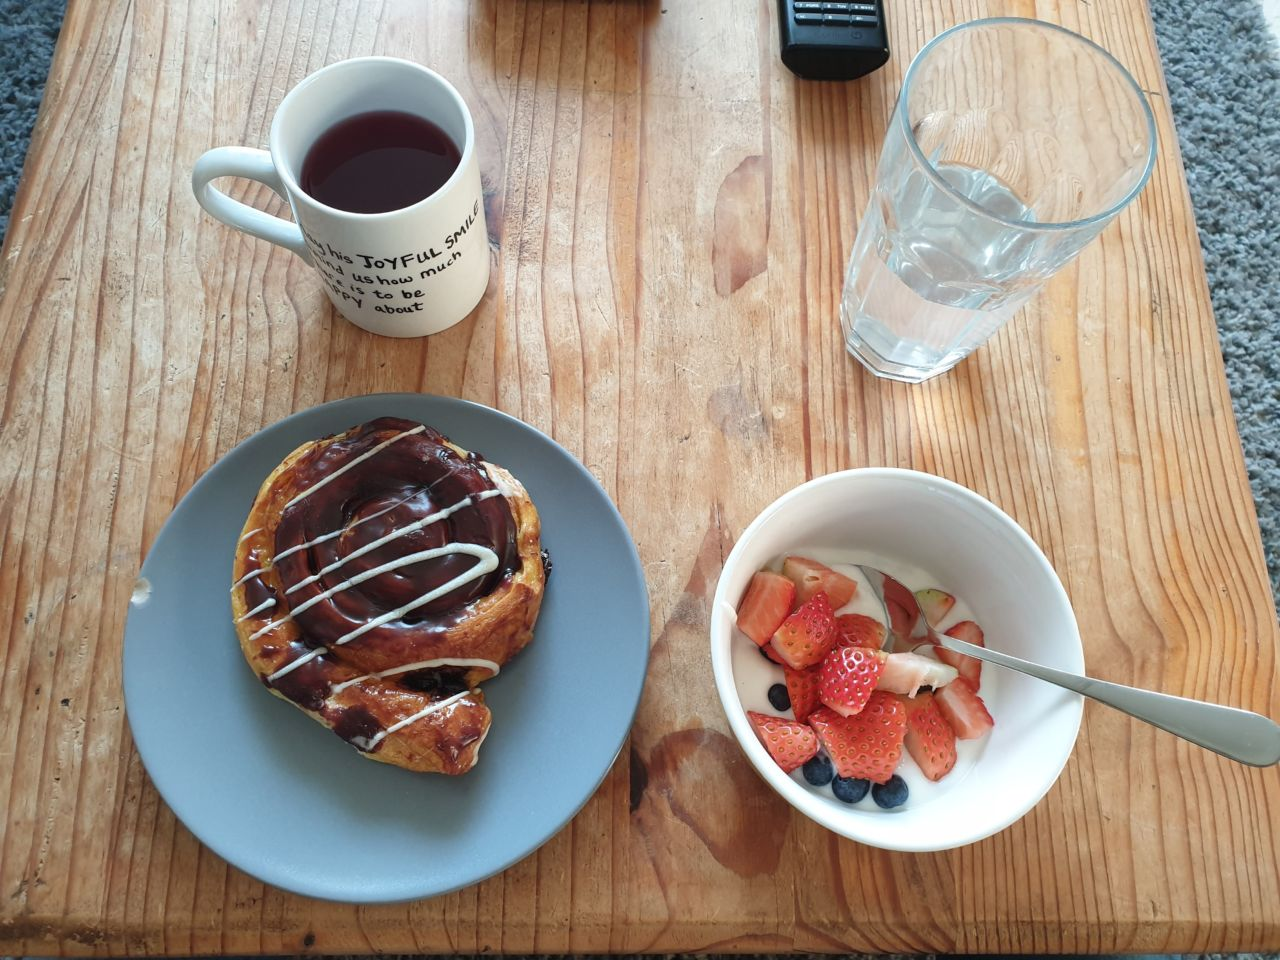 Maternity leave breakfast - 38 weeks blogger pregnancy diary